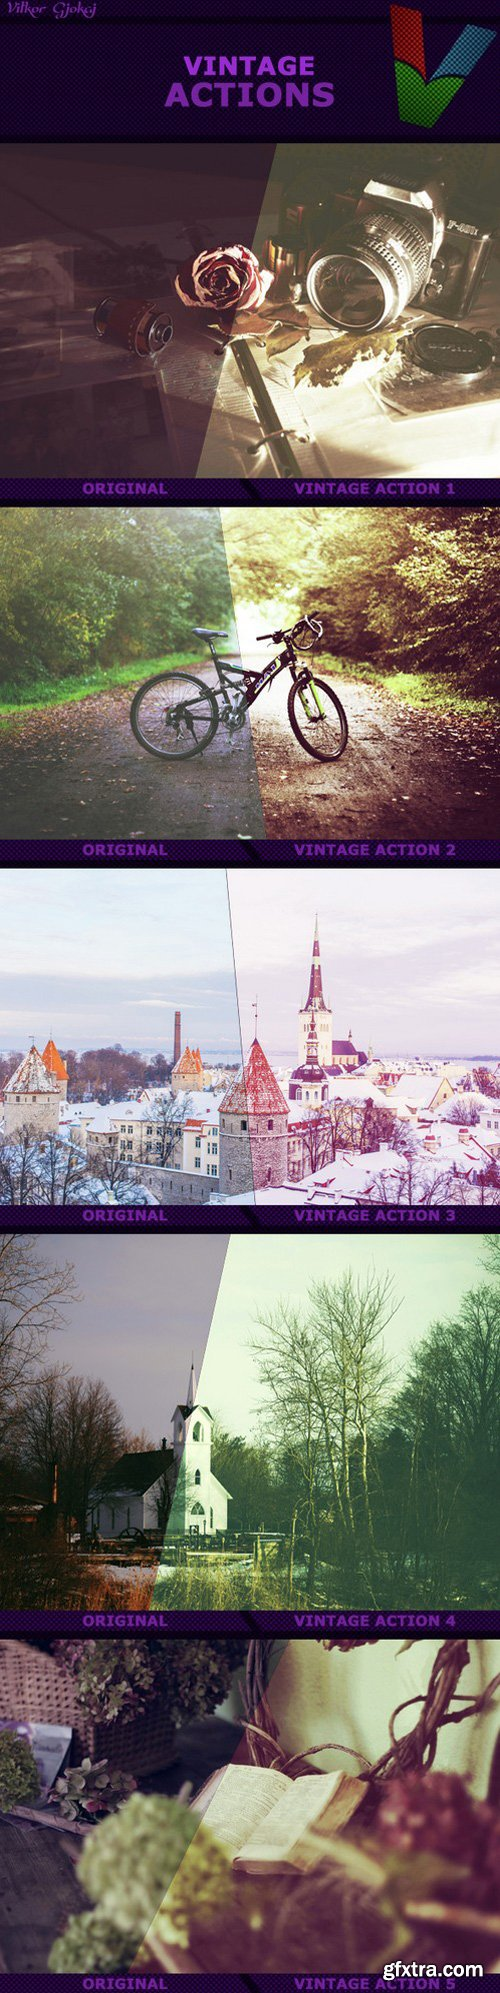 Graphicriver - Vintage Actions I 14542647